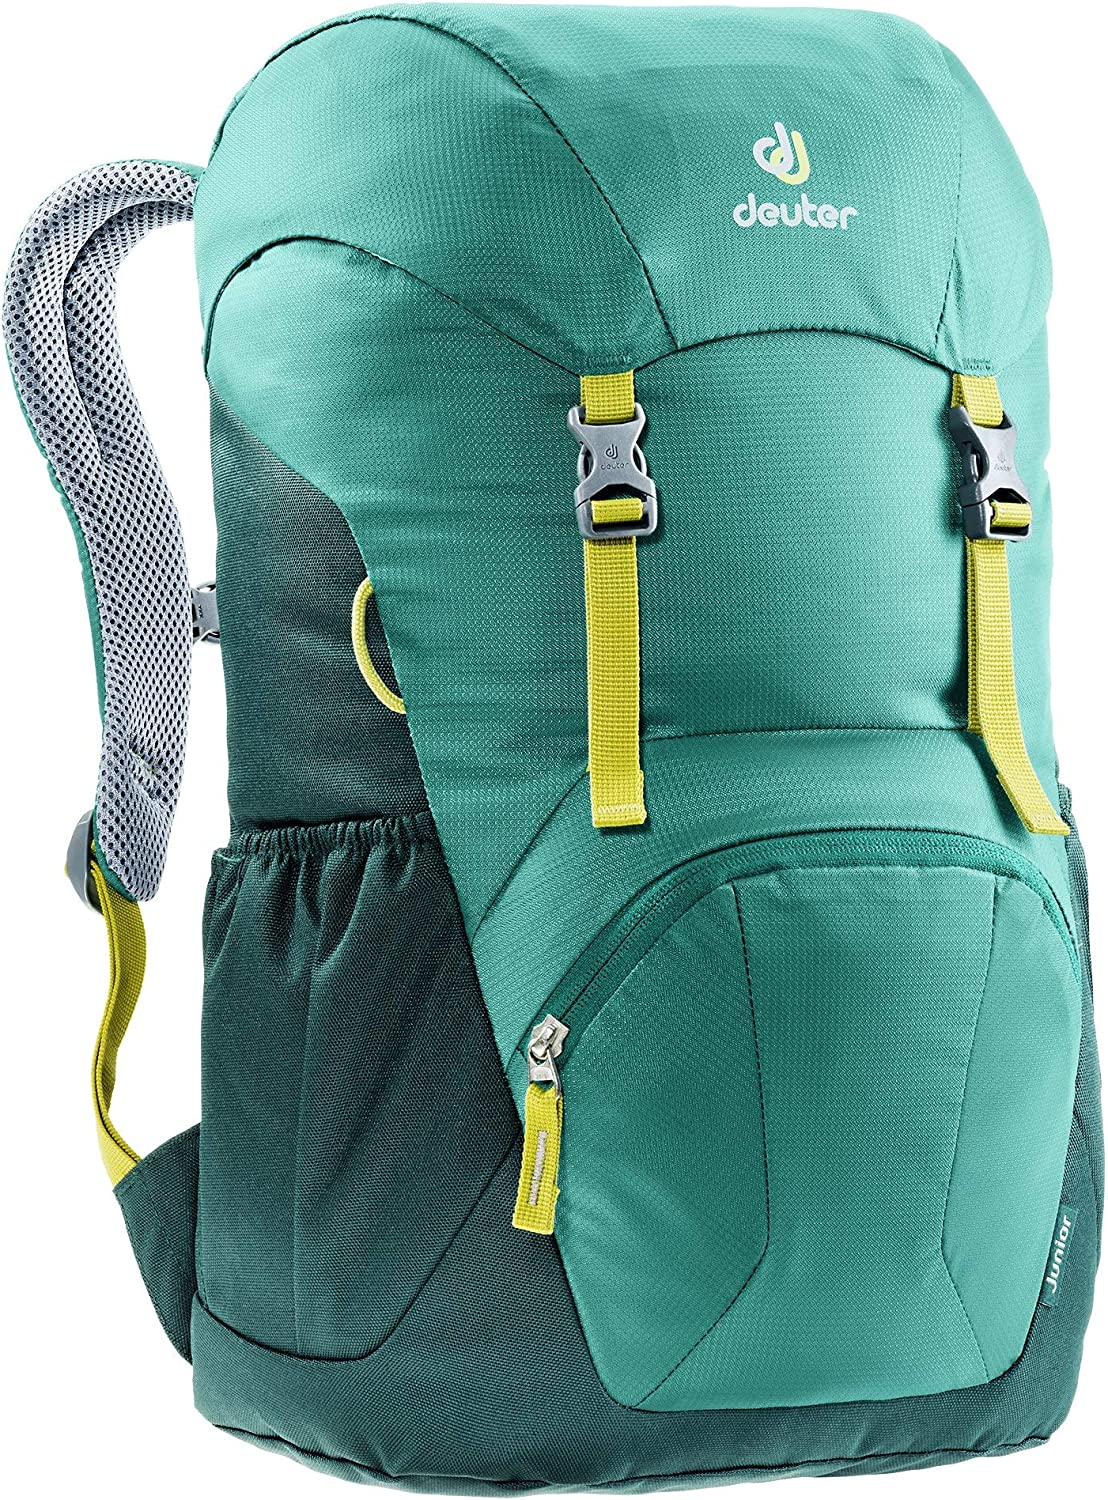 Deuter Junior Hiking Backpack